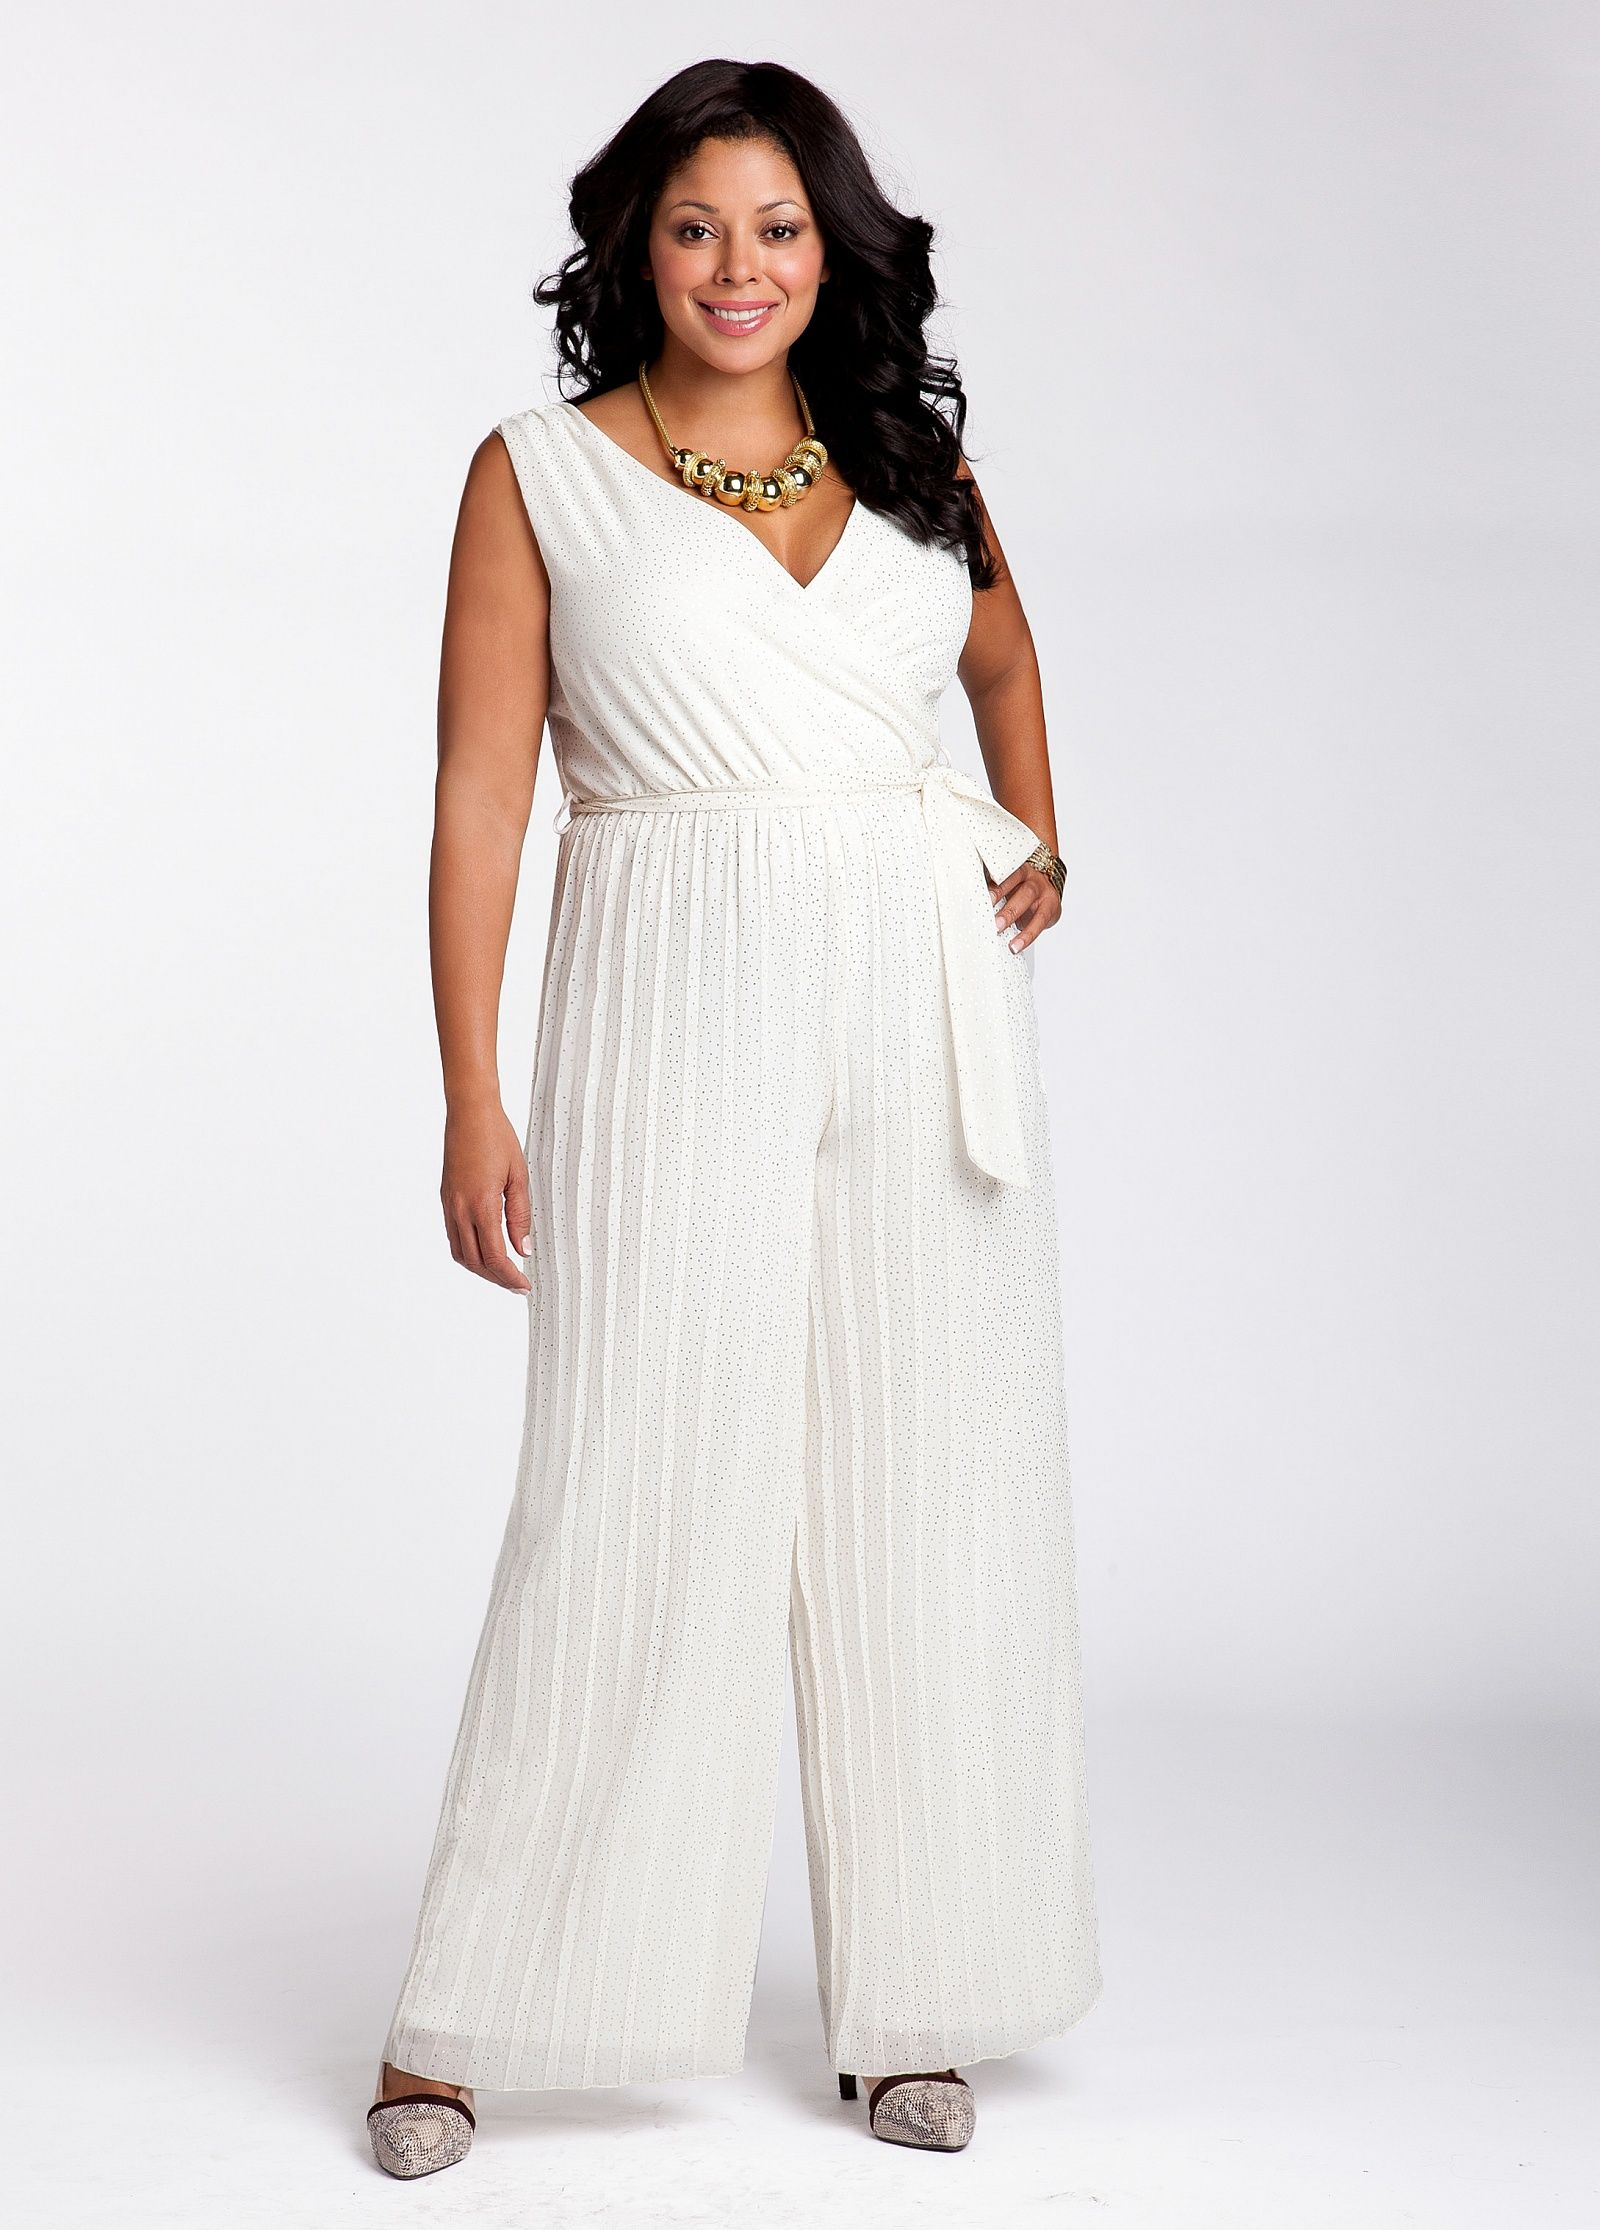 7c70acdcfb4b9  41.65 - Plus Size Ashley Stewart  Glitter Detail Pleated Jumpsuit ...